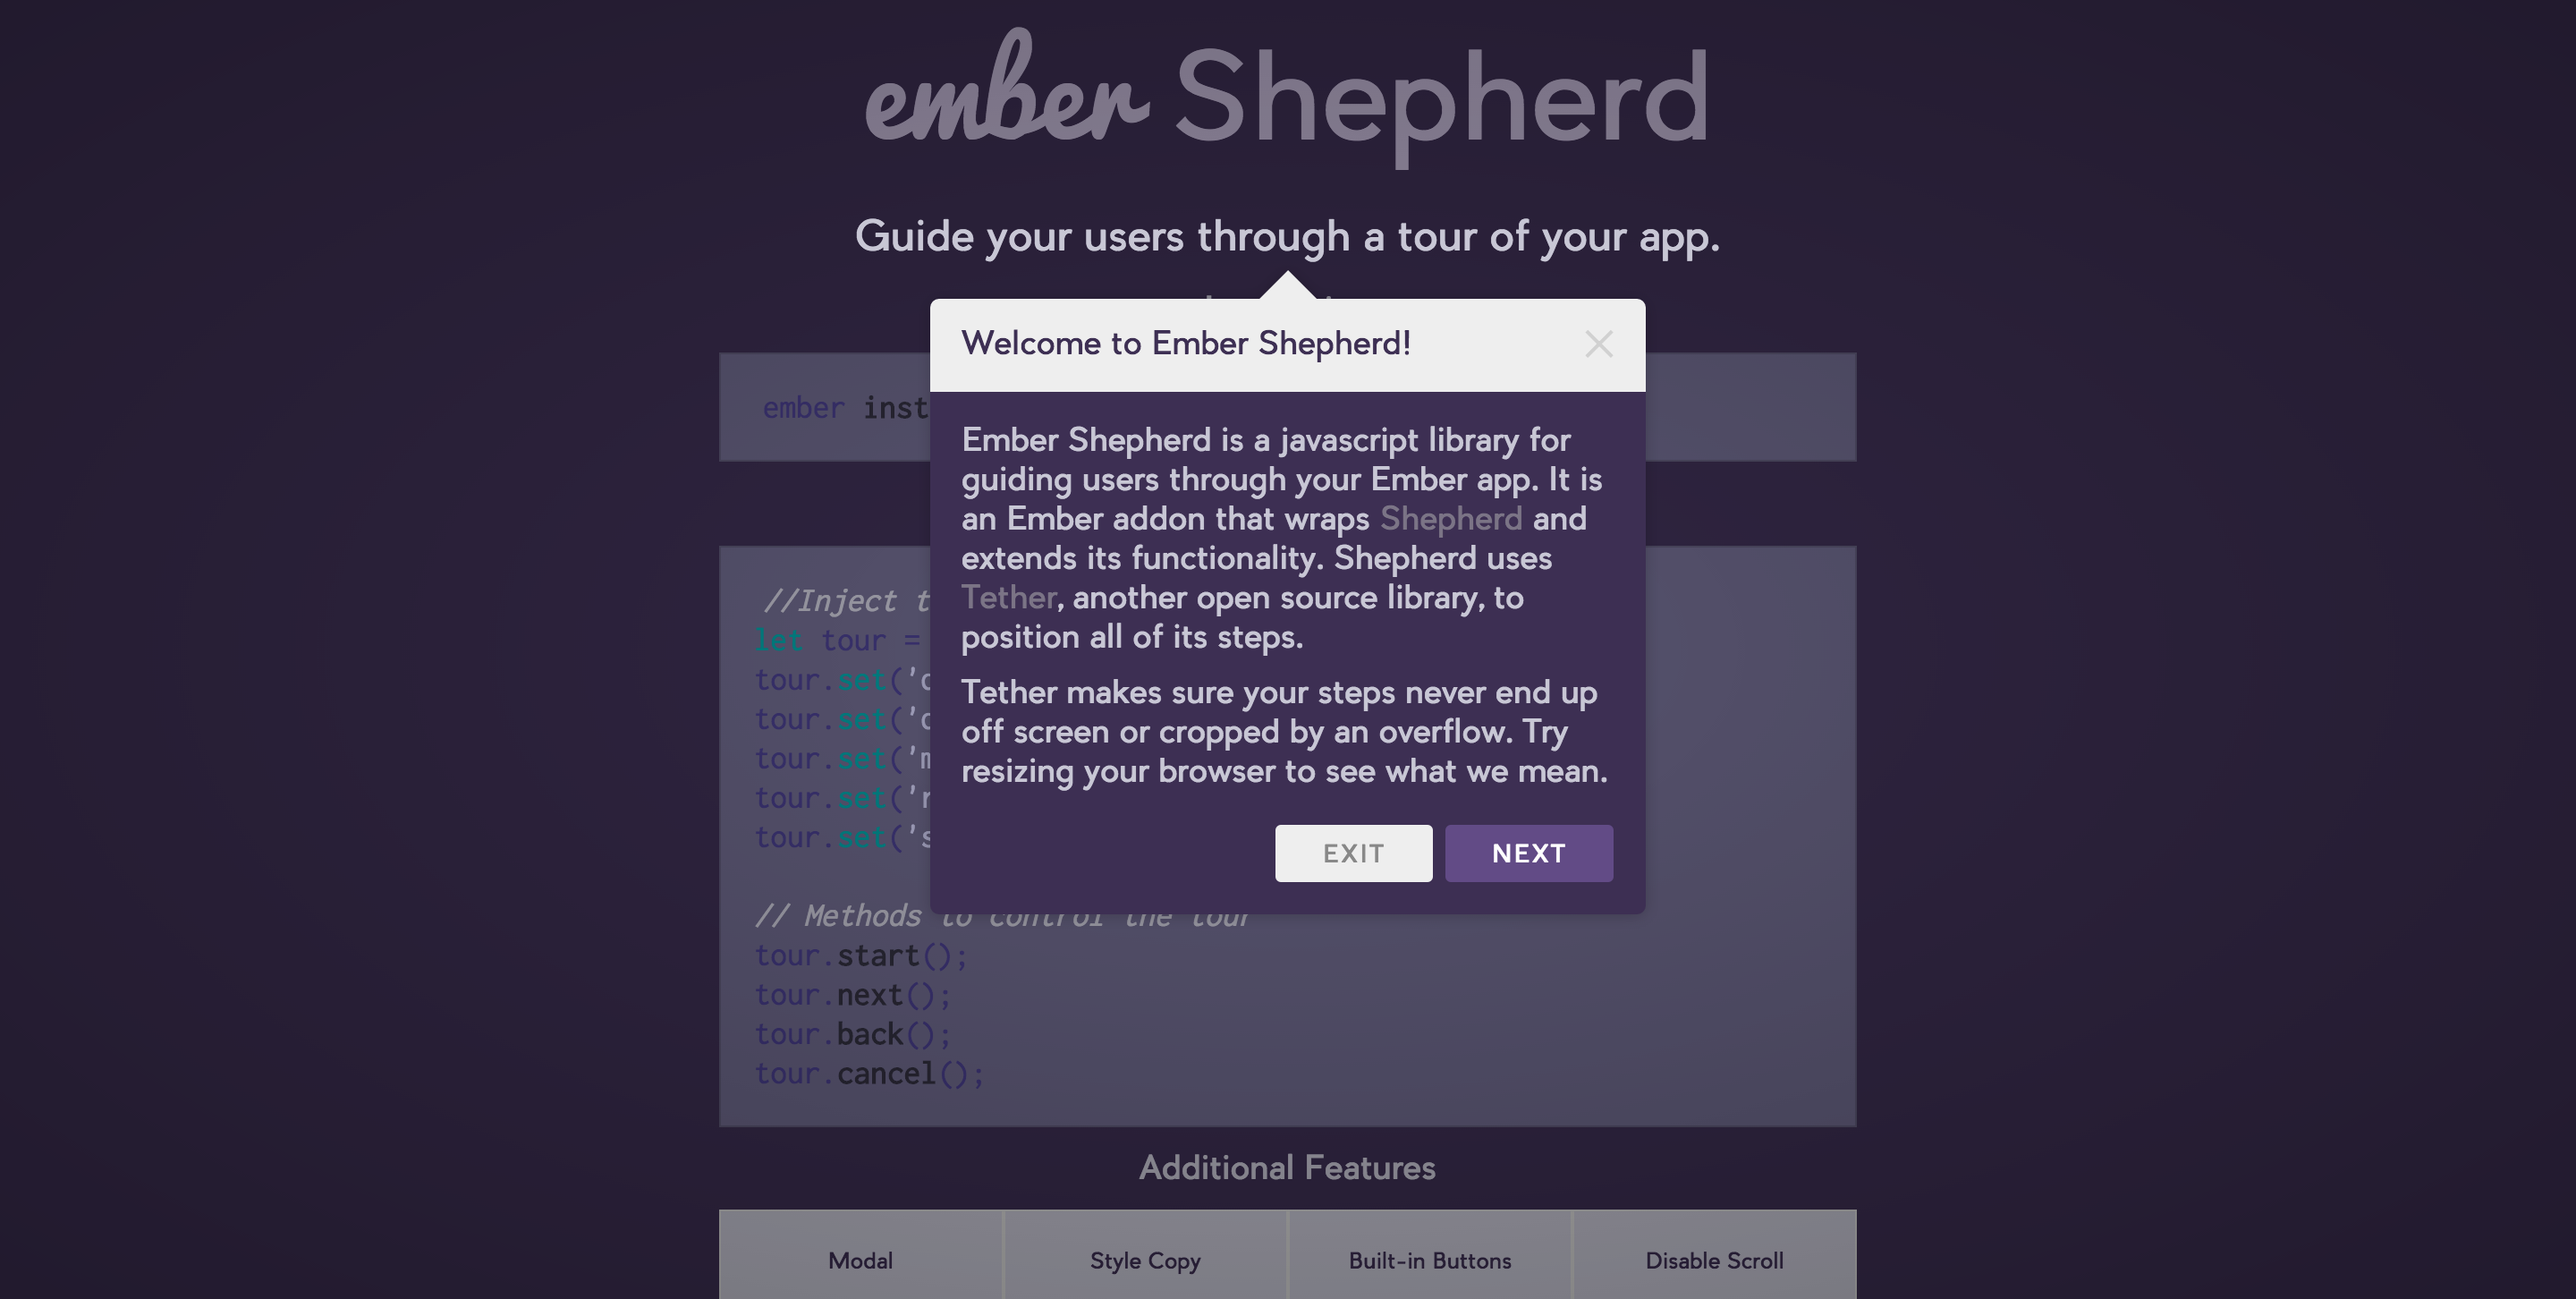 Guide your users through a tour of your app